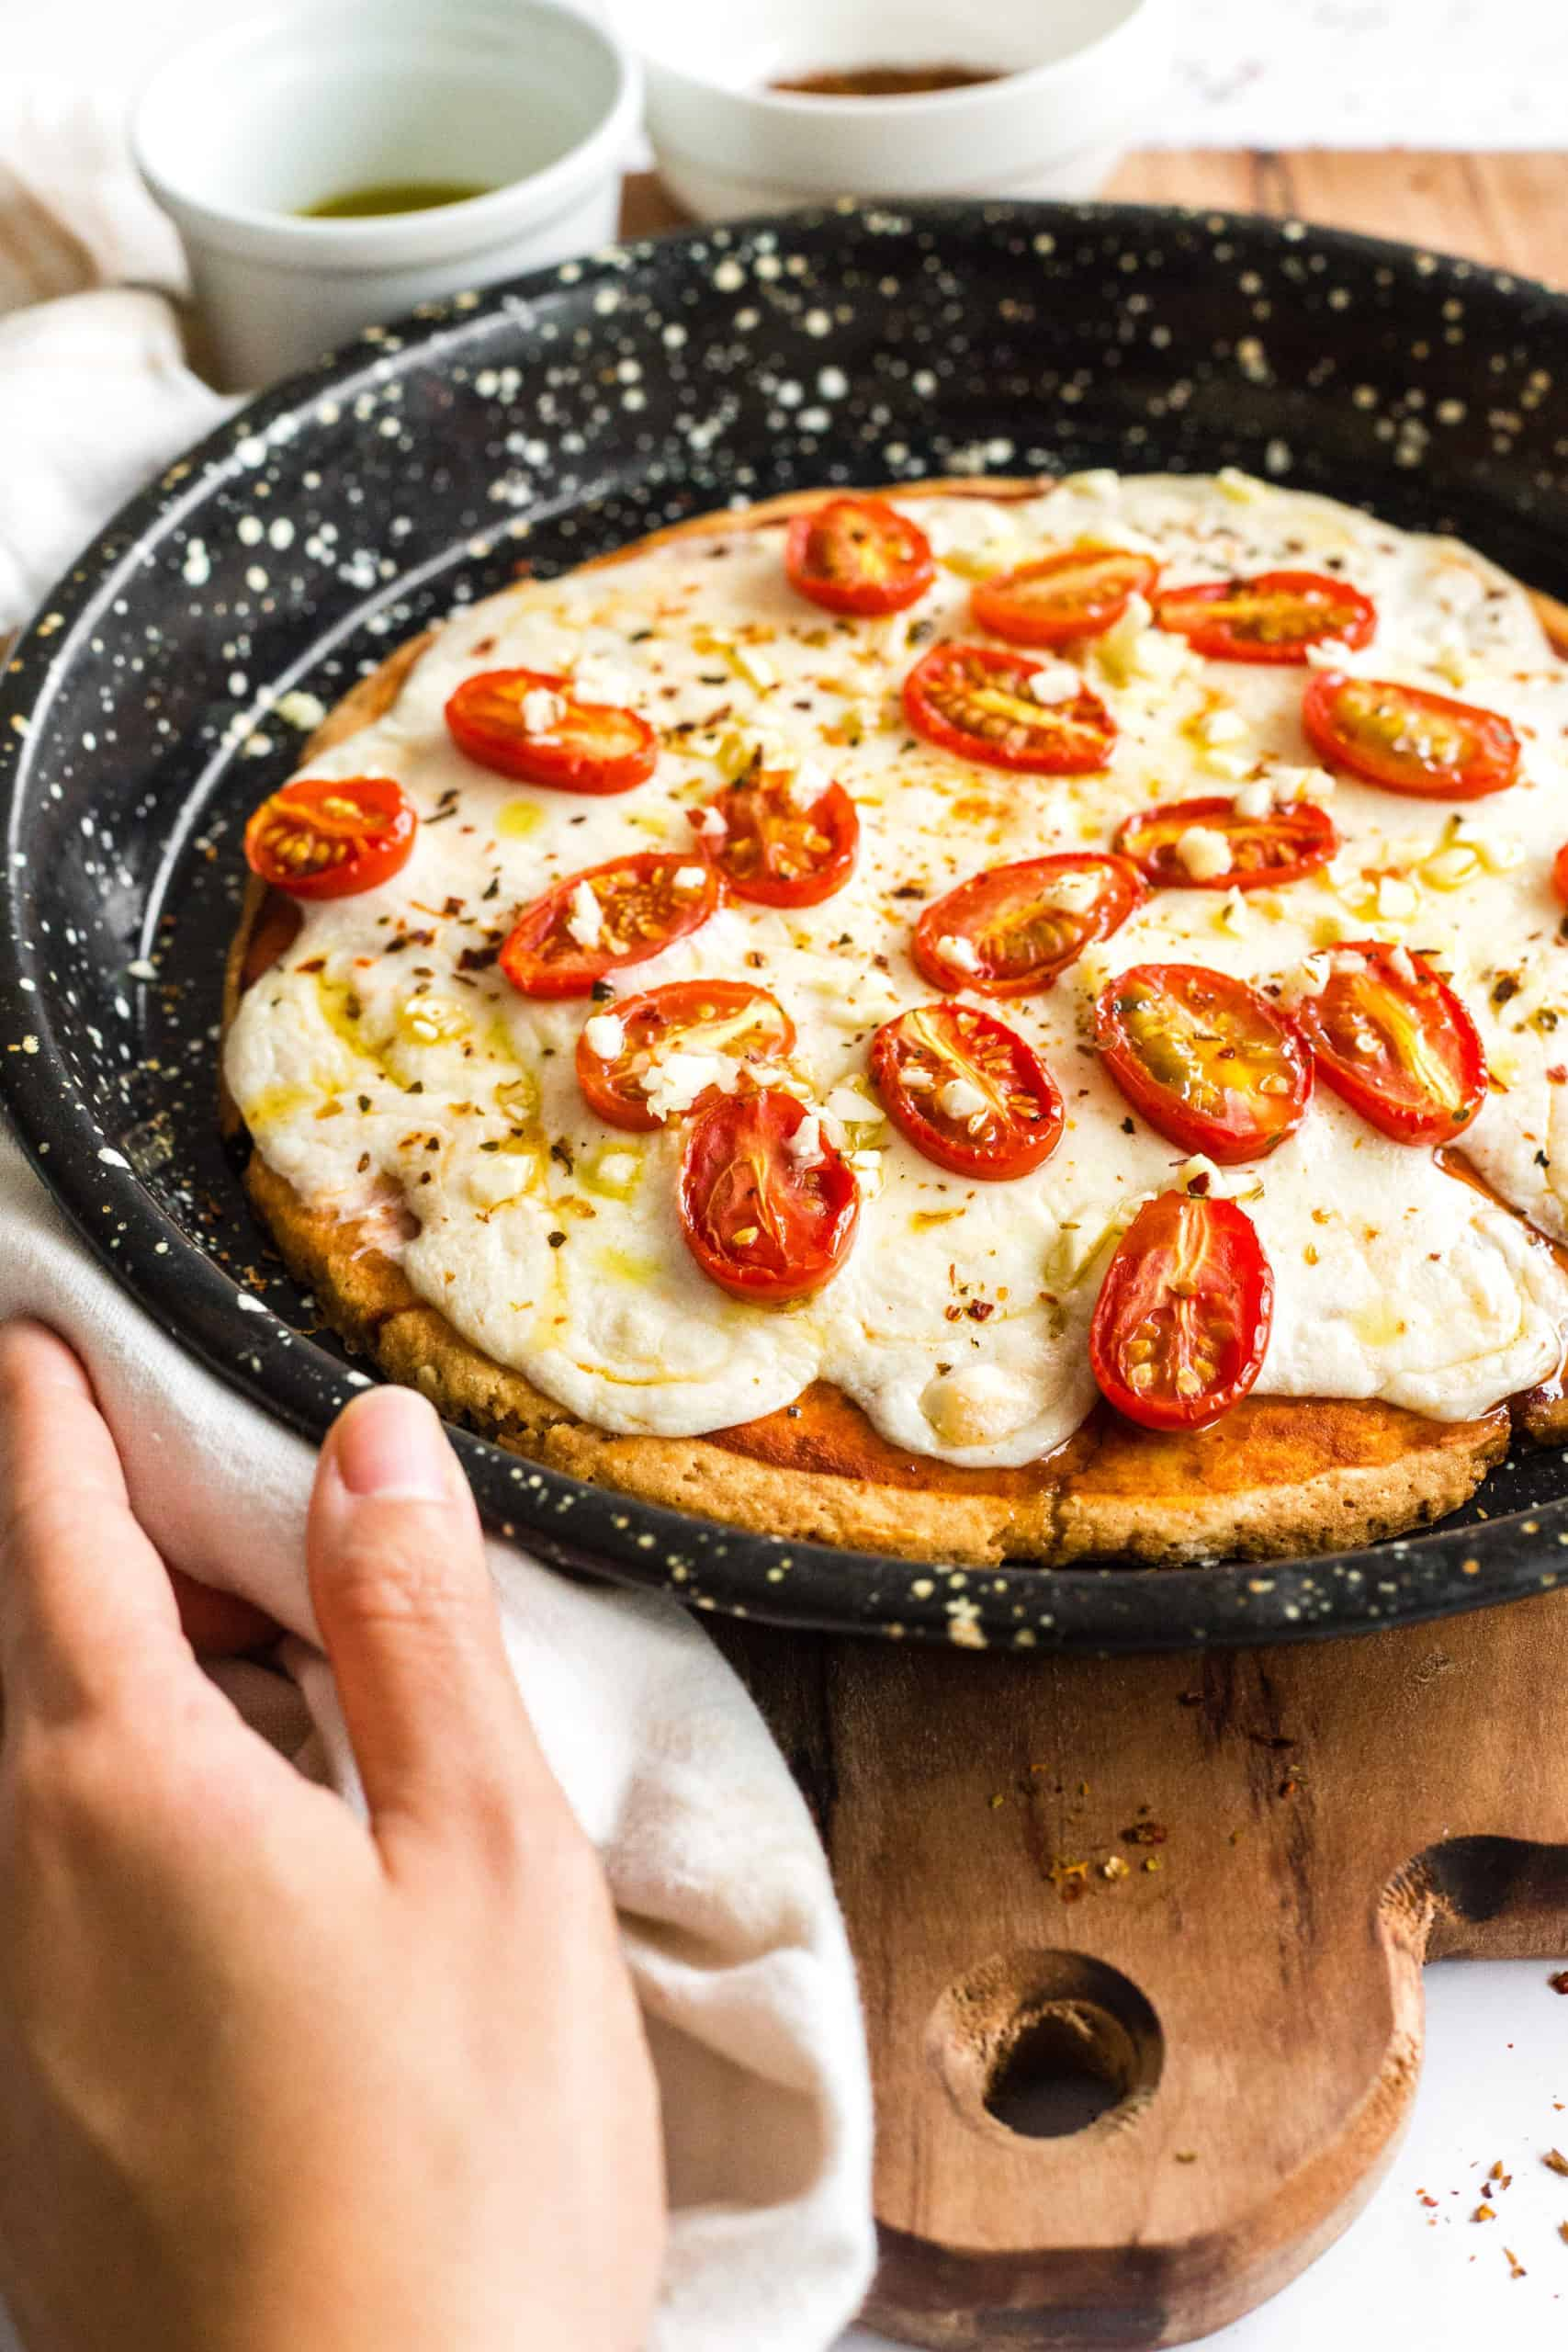 Gluten-free pizza in a pizza pan on a wooden board